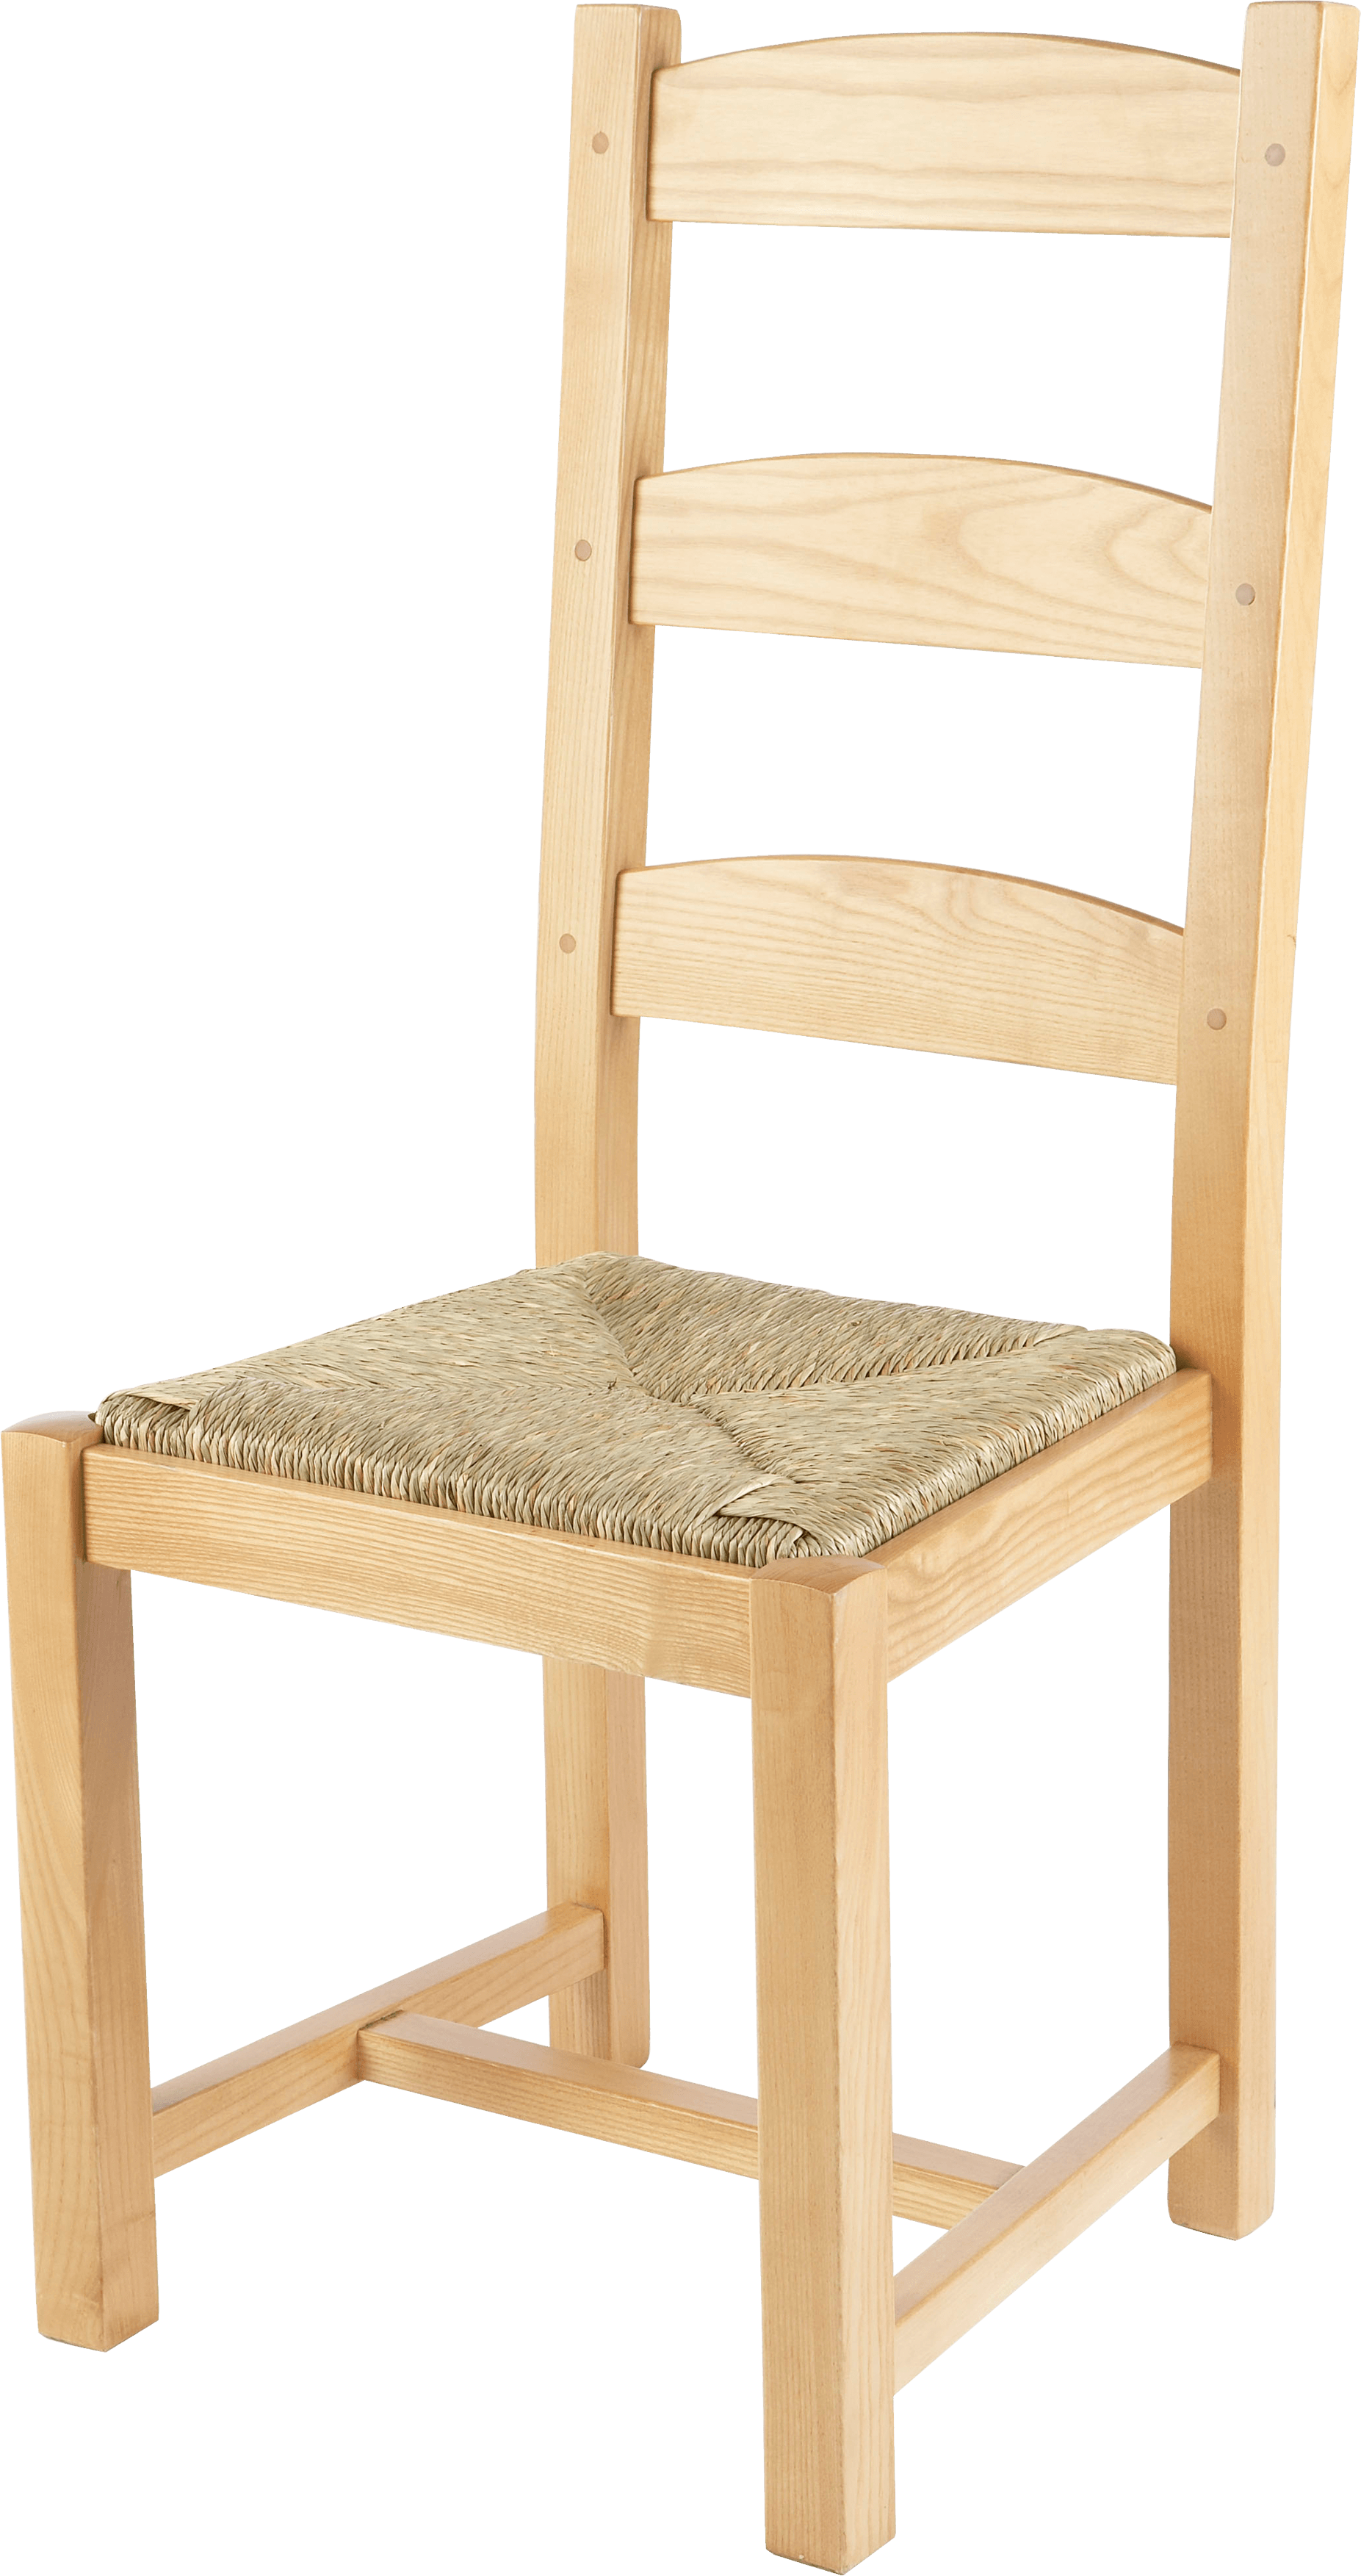 download chair png image png image pngimg #13223